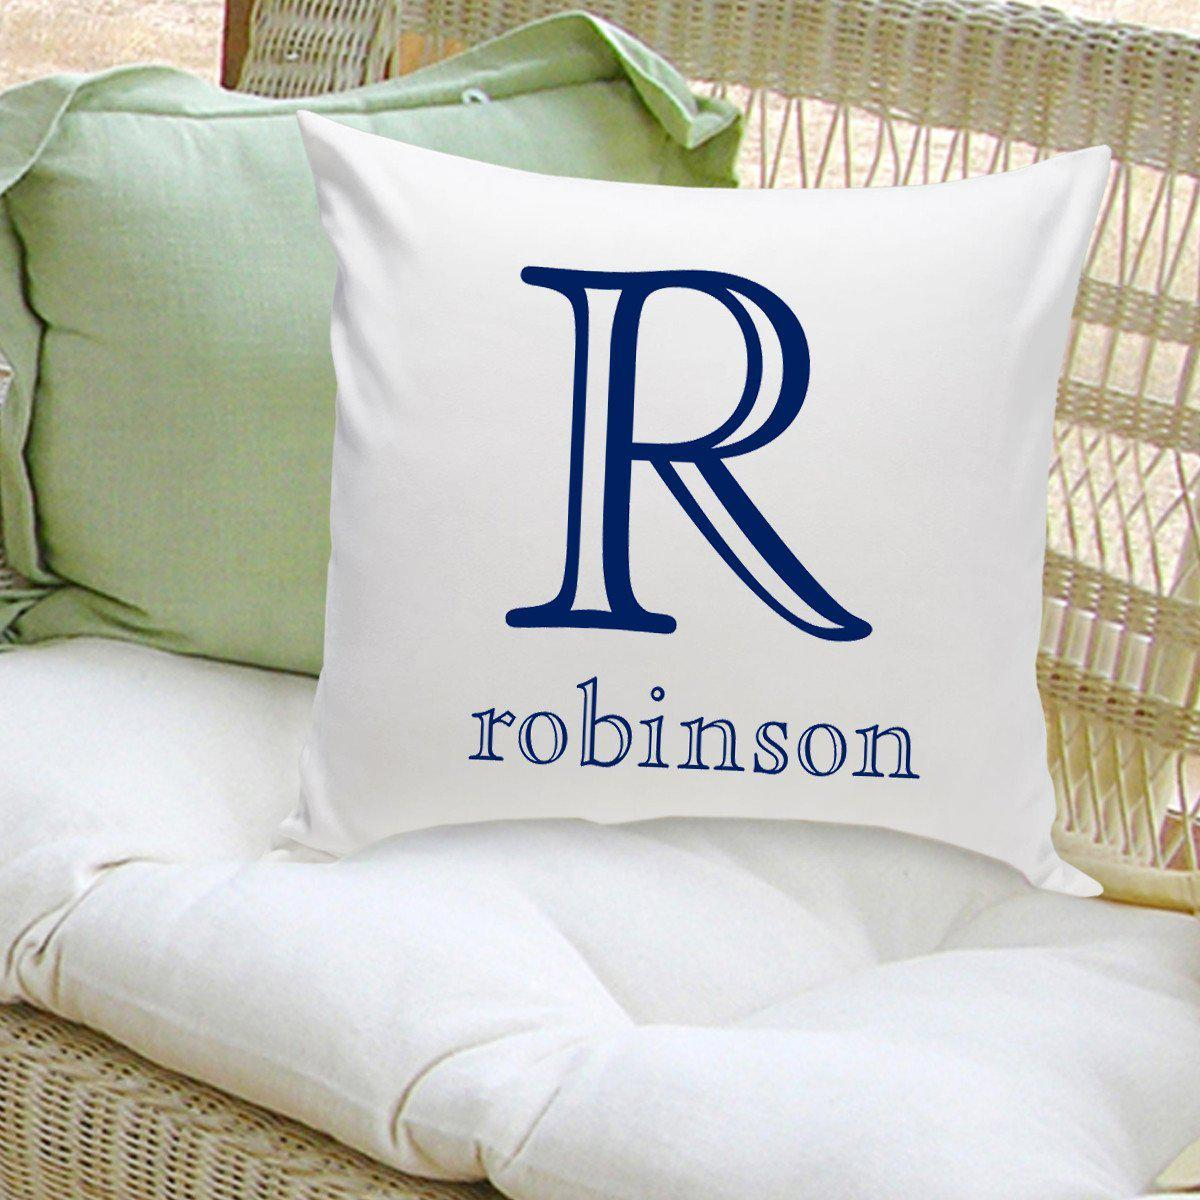 Personalized-Throw-Pillow